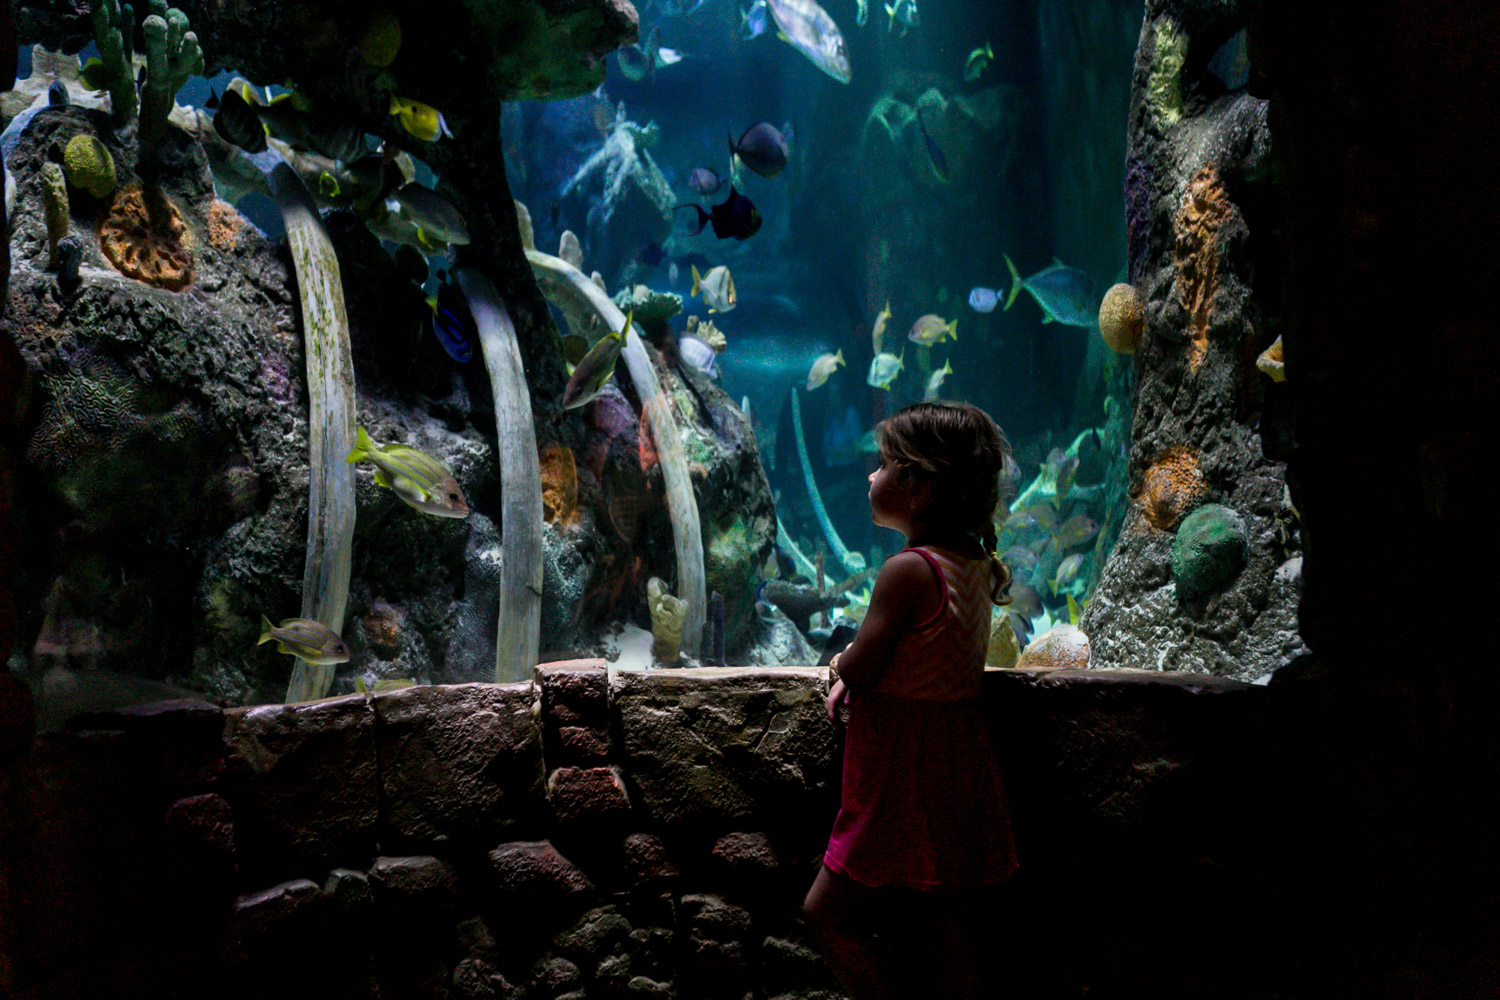 Captured by Best Documentary Family Photographer, Renee McDaniel of Renee McDaniel Photography in Manhattan Kansas. Photographed at SeaLife Aquarium, Kansas City Missouri.